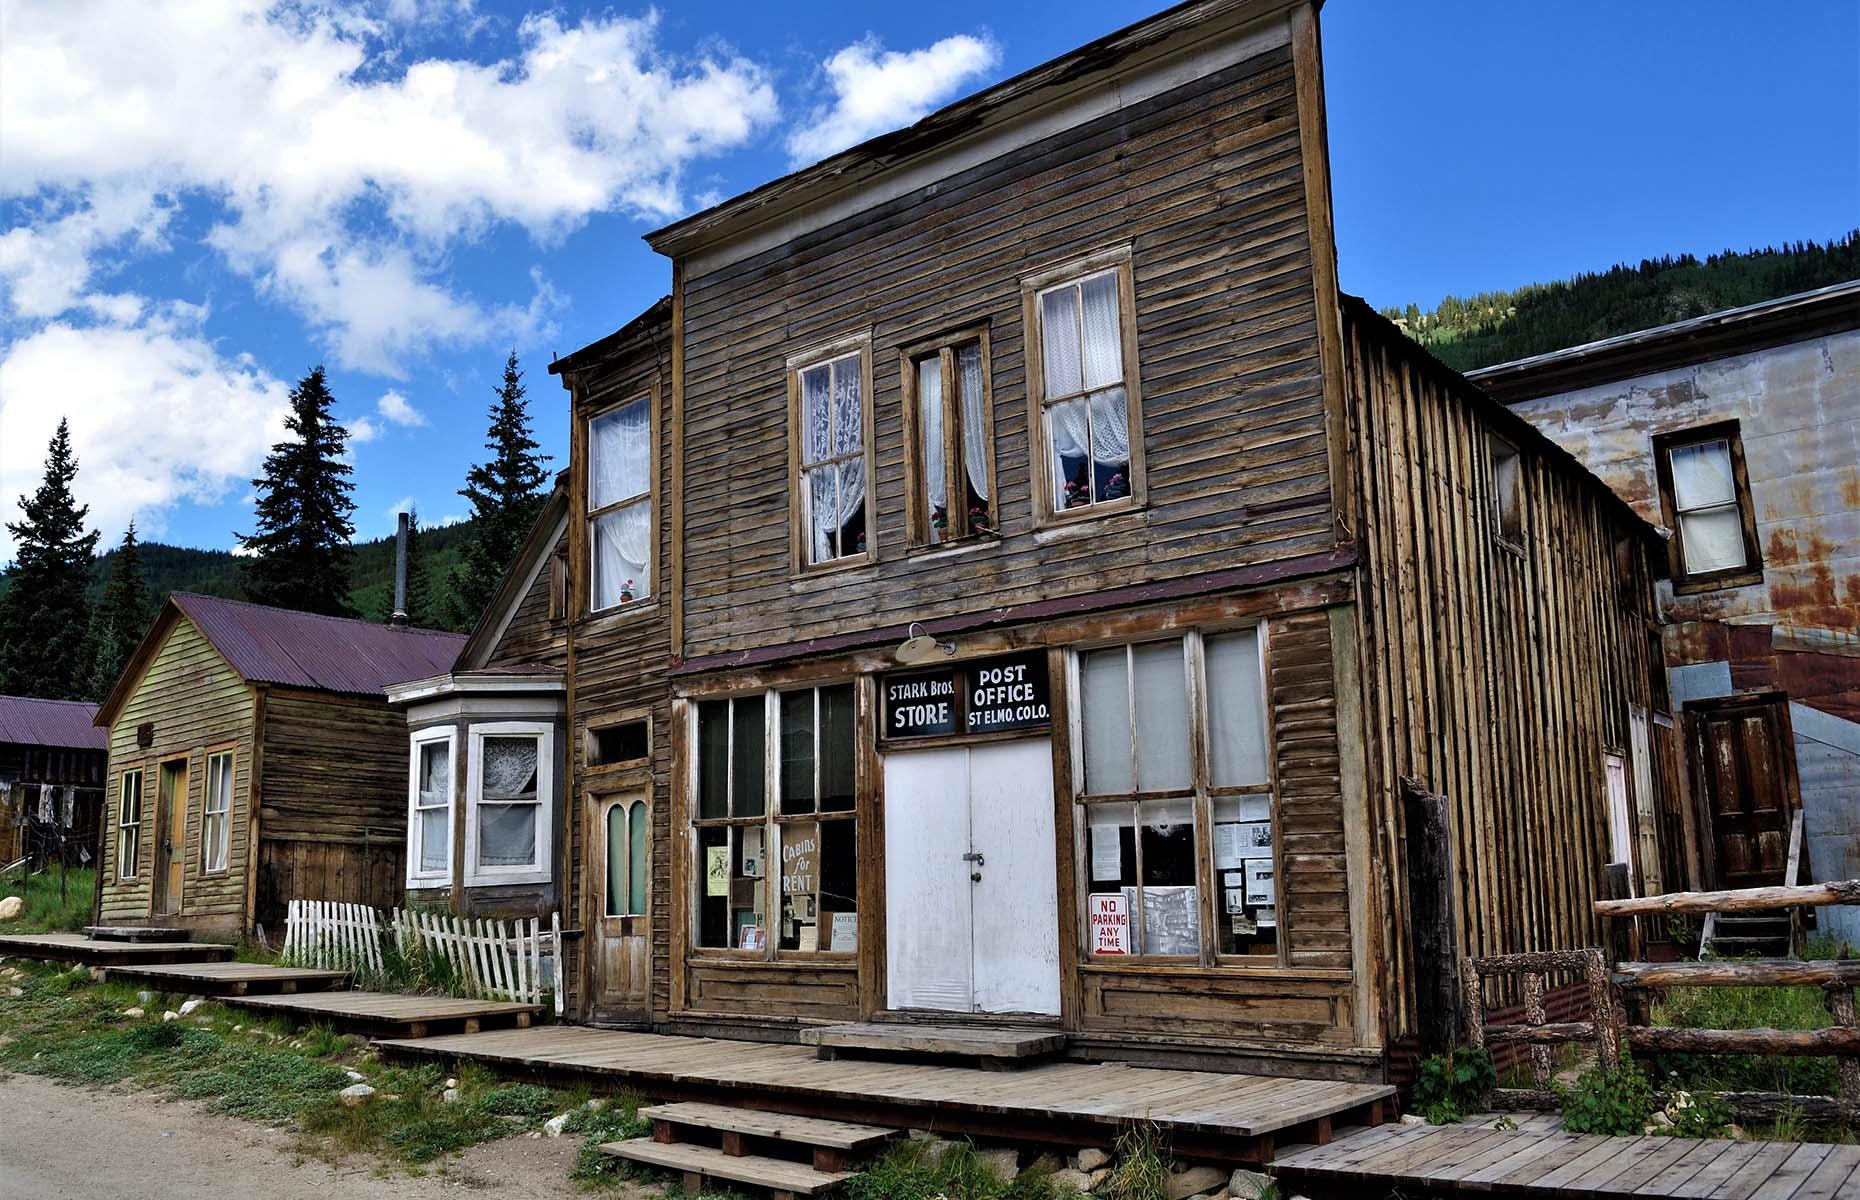 Slide 15 of 46: Though it is considered a ghost town, a handful of residents still live among the old buildings and while it's not easy − there hasn't been a post office since the St Elmo postmaster passed away in 1952 – the town still survives on travelers passing through or coming to explore the fascinating stories of the Gold Rush-era.